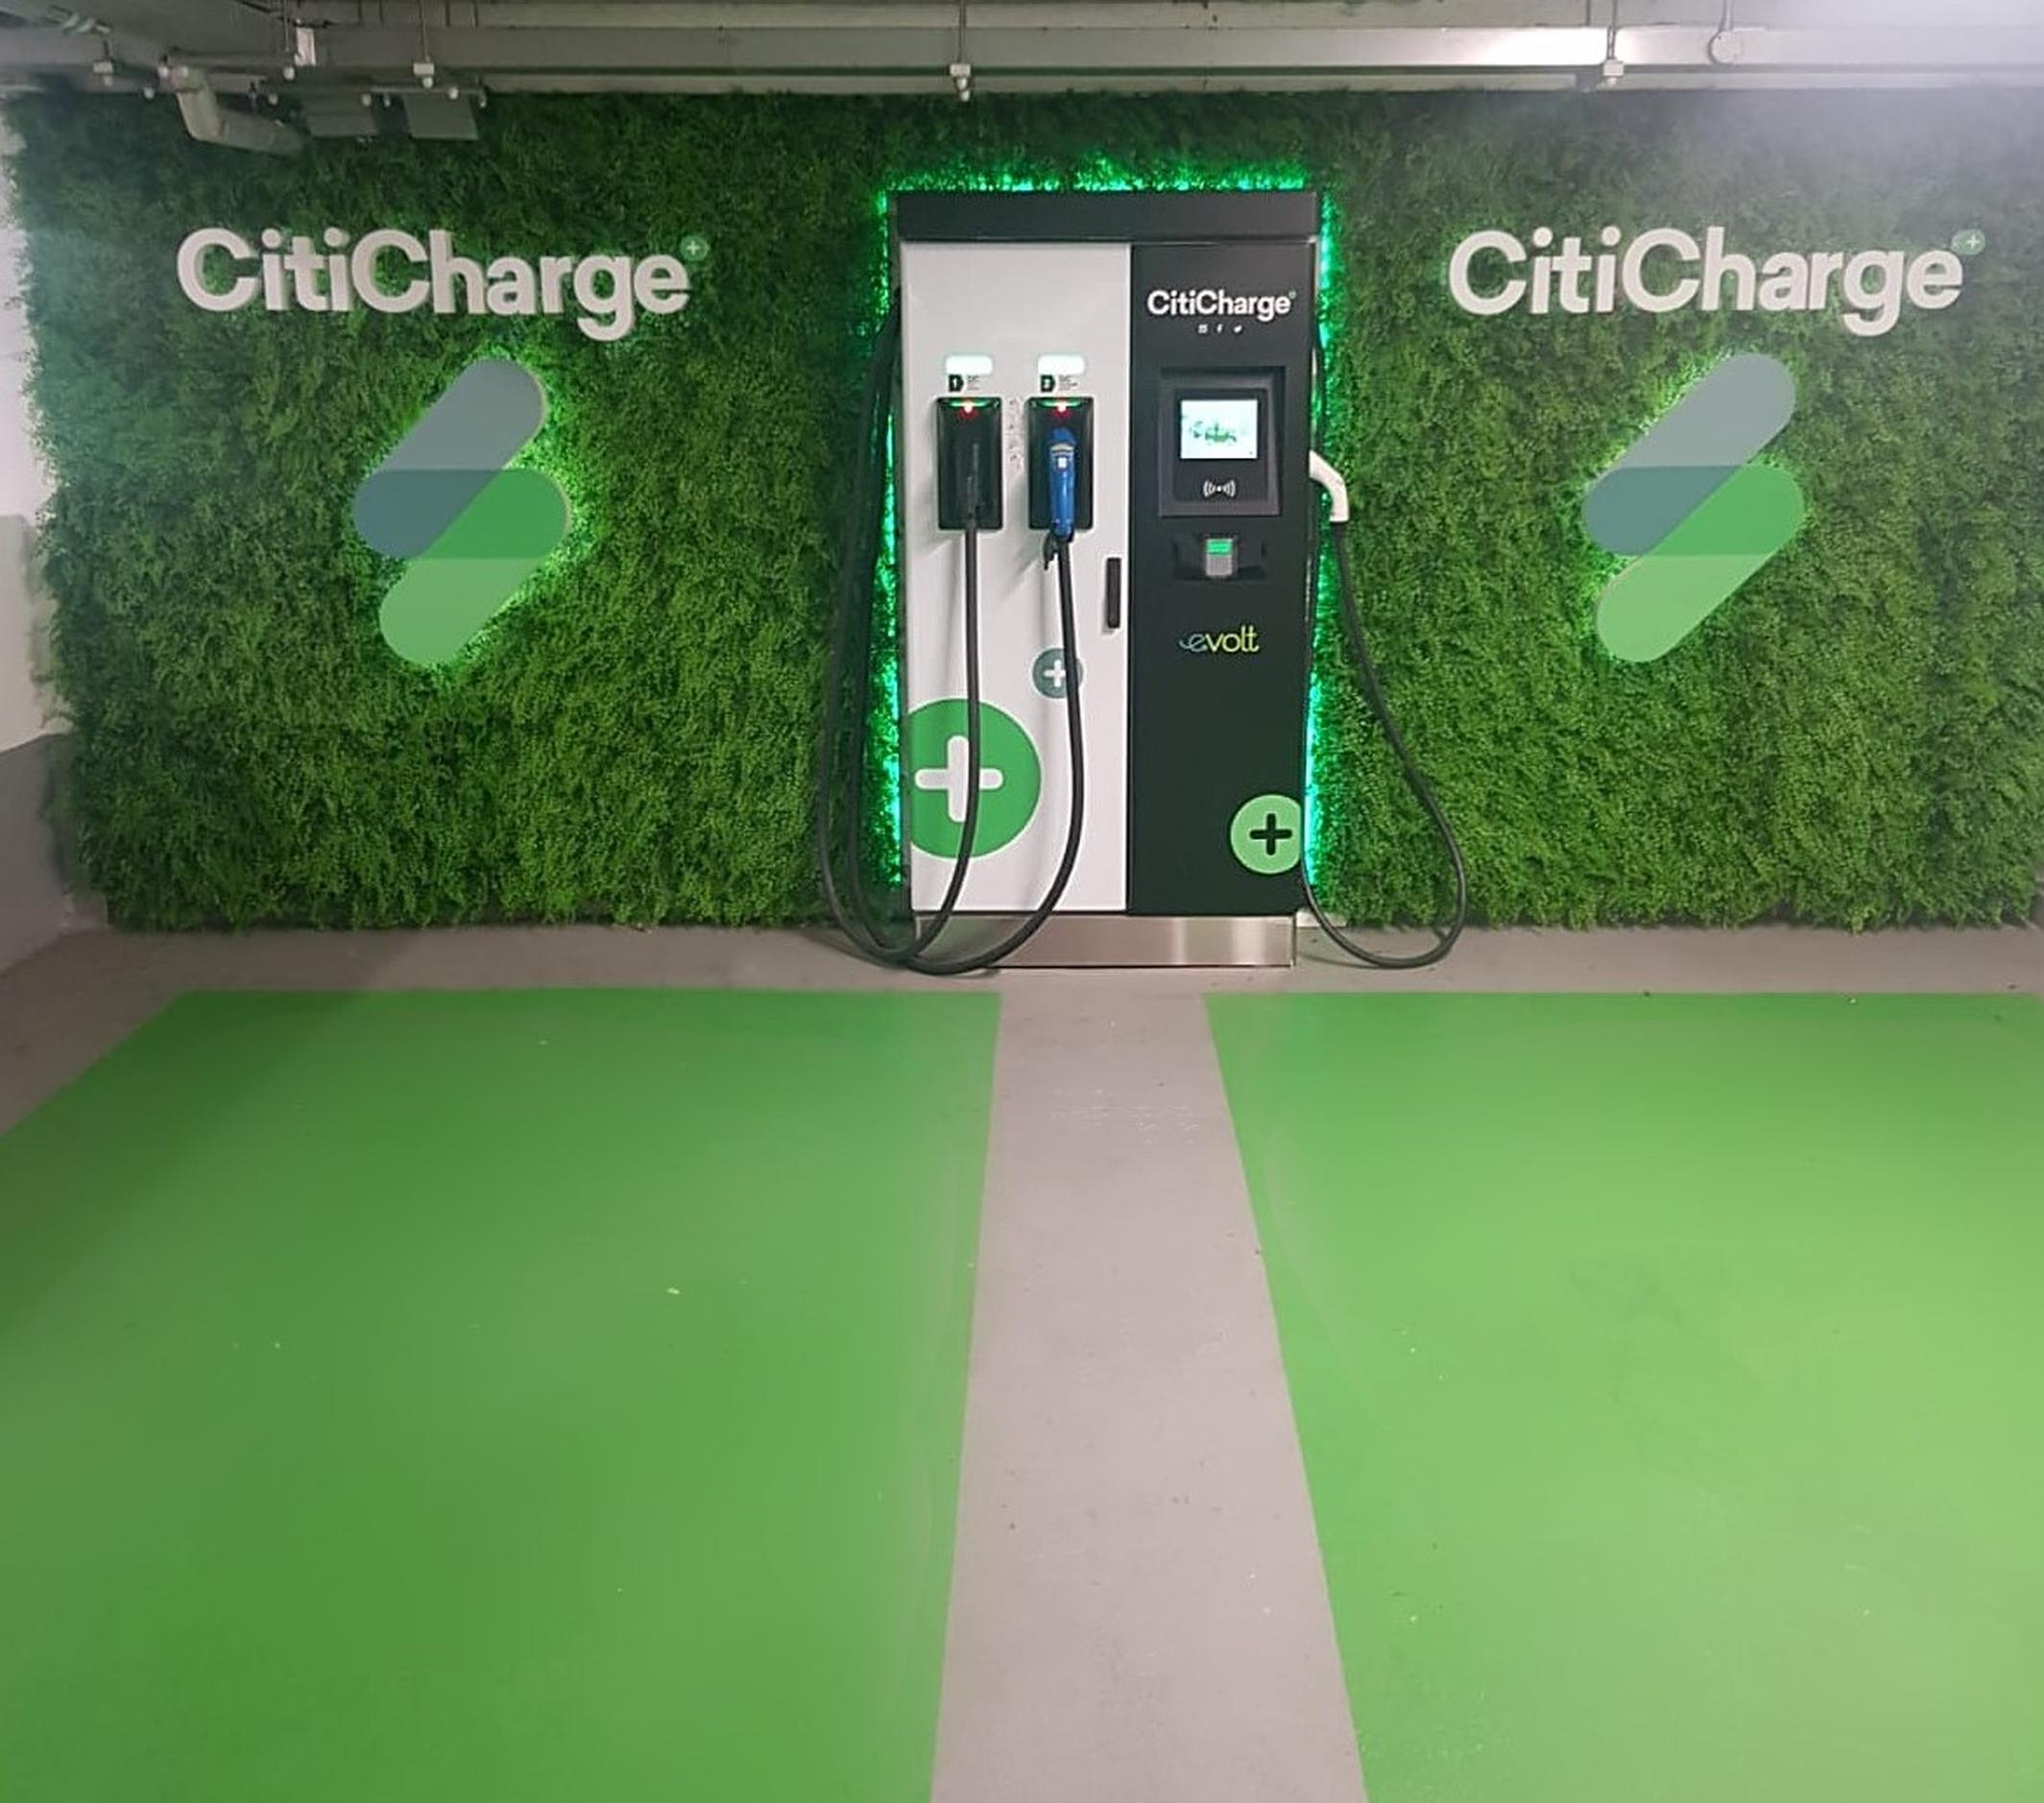 A CitiCharge 480-volt electric vehicle rapid charging station